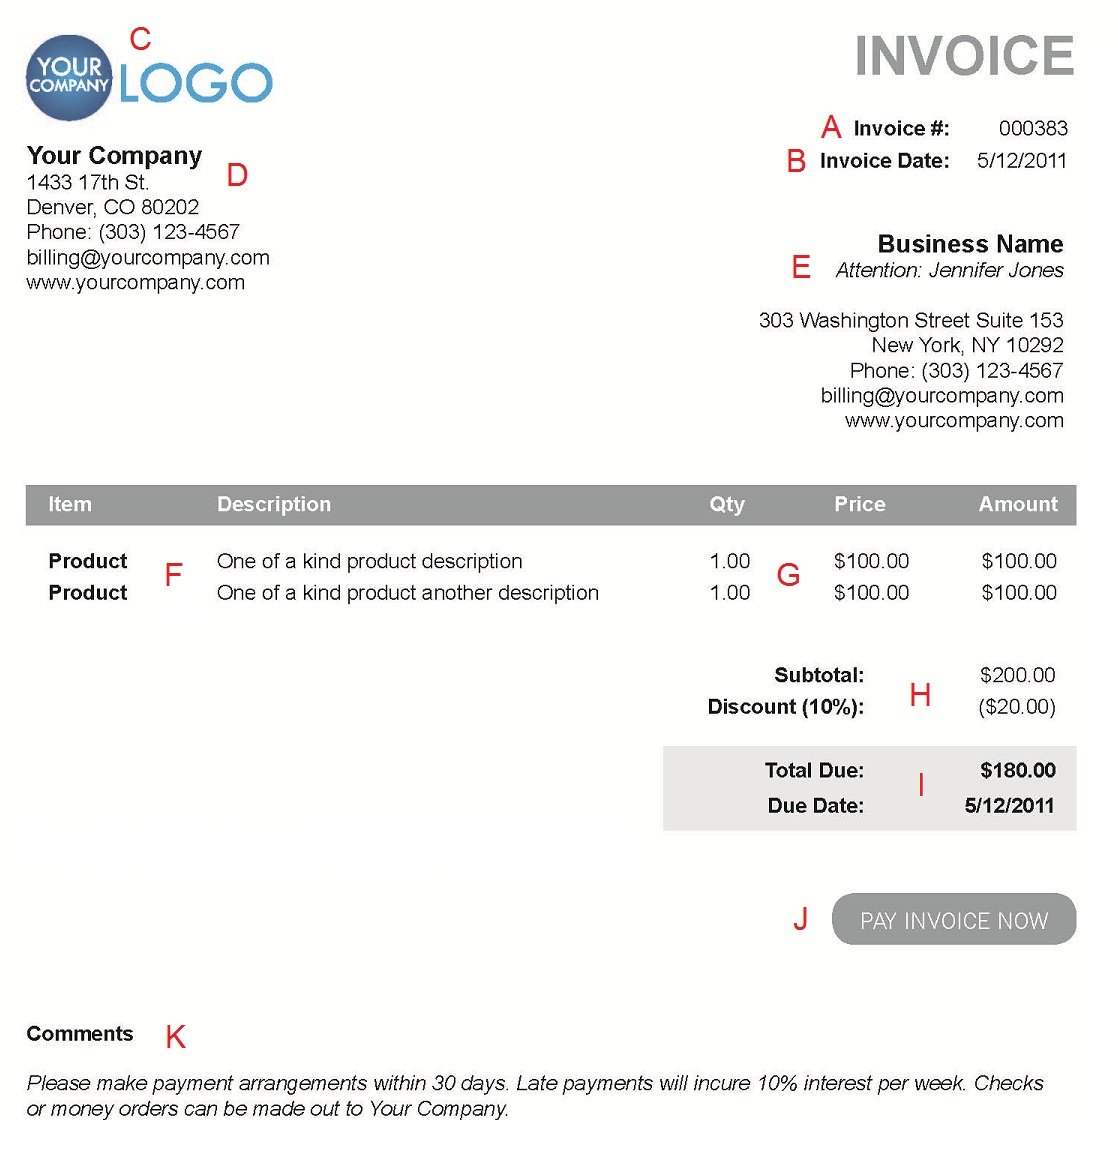 Usdgus  Winning The  Different Sections Of An Electronic Payment Invoice With Extraordinary A  With Agreeable Shipping Invoice Also Send Invoice In Addition How To Do Invoices And Invoicing Software For Mac As Well As Standard Invoice Additionally Work Invoice Template From Paysimplecom With Usdgus  Extraordinary The  Different Sections Of An Electronic Payment Invoice With Agreeable A  And Winning Shipping Invoice Also Send Invoice In Addition How To Do Invoices From Paysimplecom